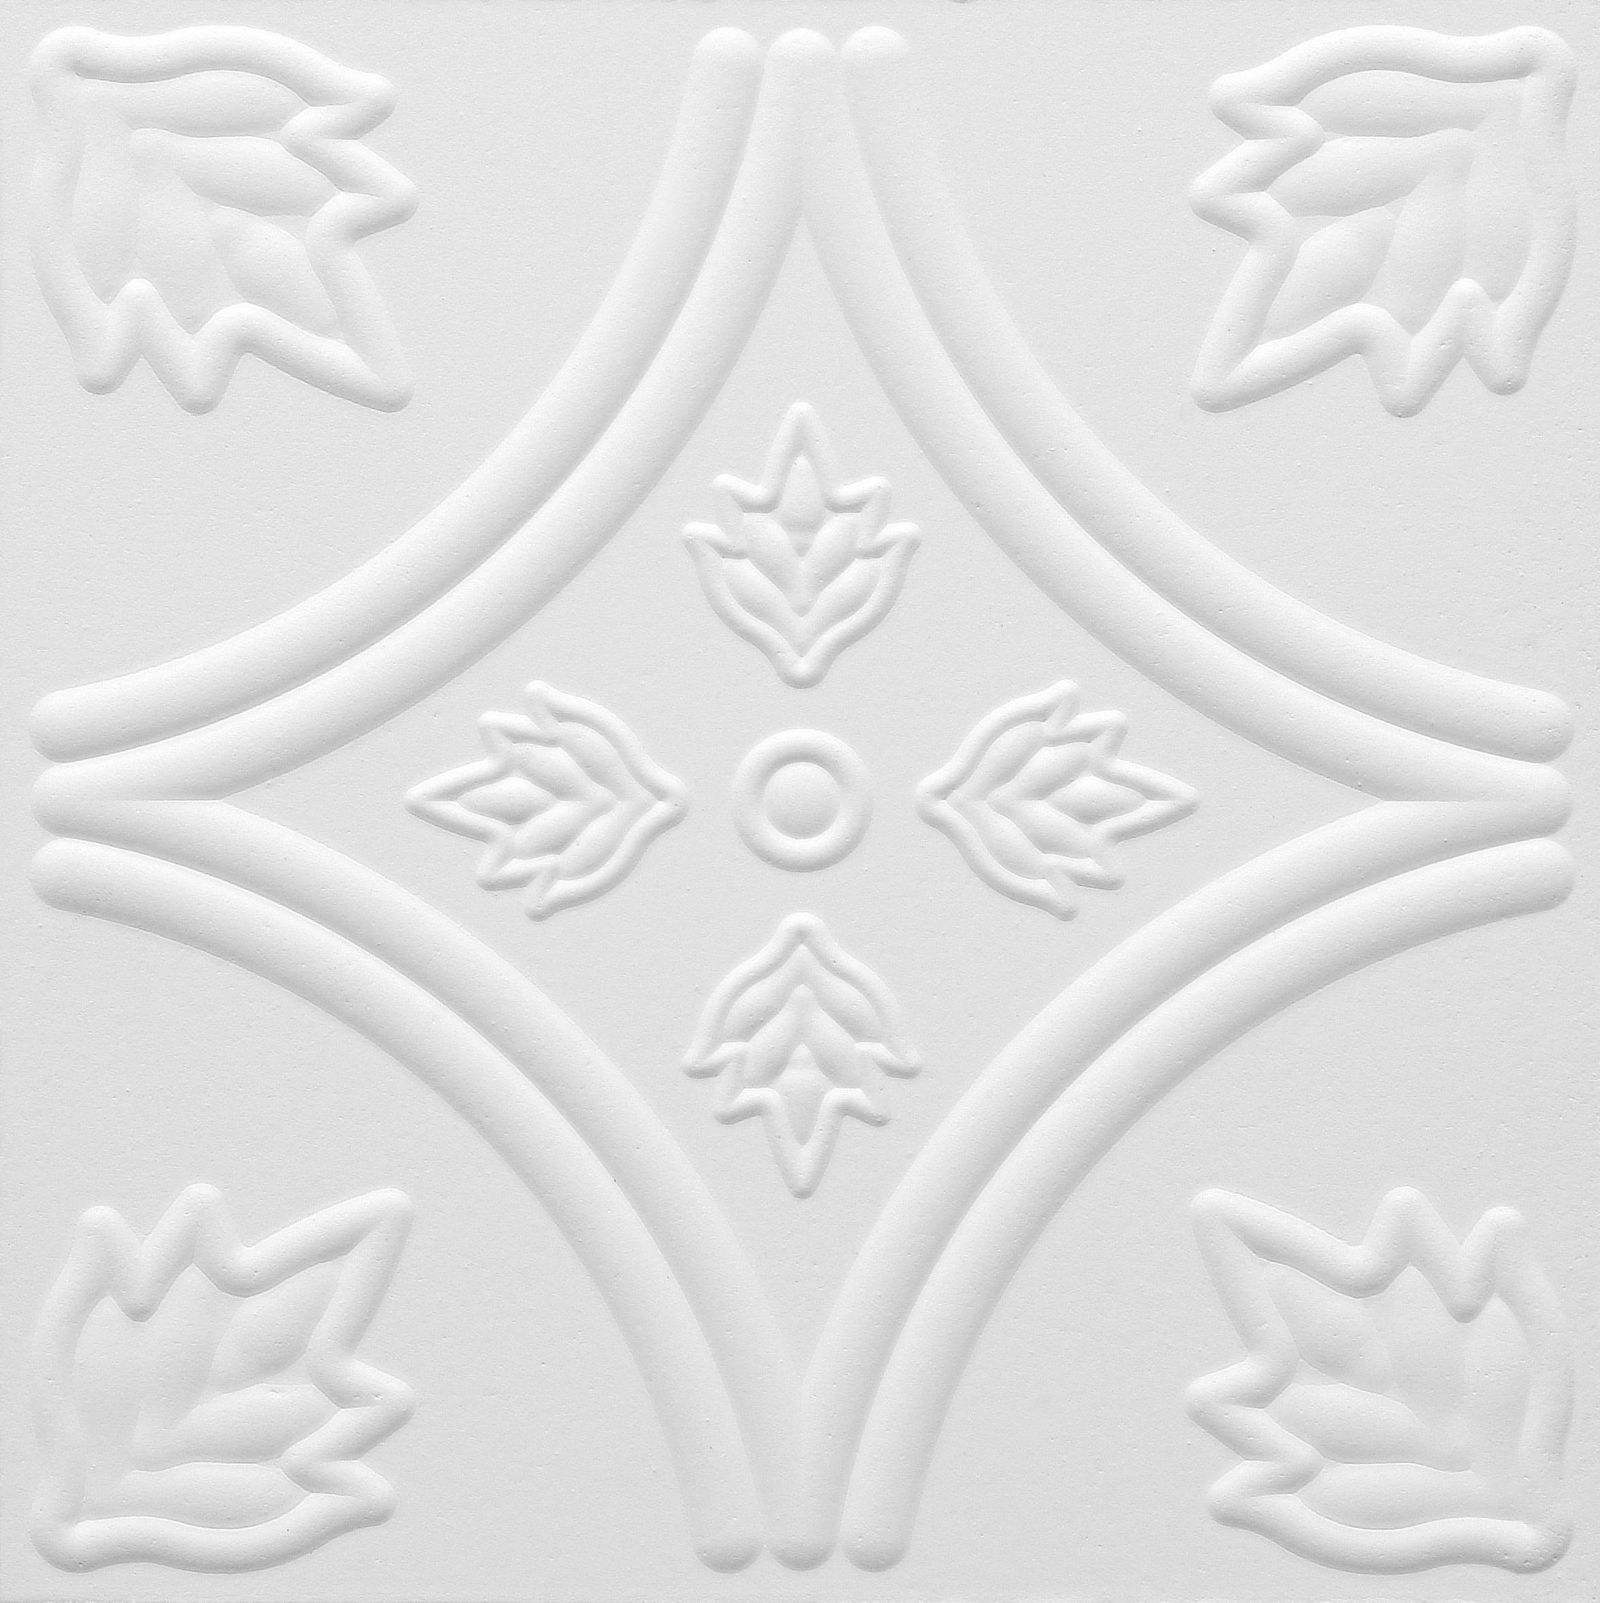 Armstrong ceiling tile patterns httpcreativechairsandtables armstrong ceiling tile patterns dailygadgetfo Choice Image